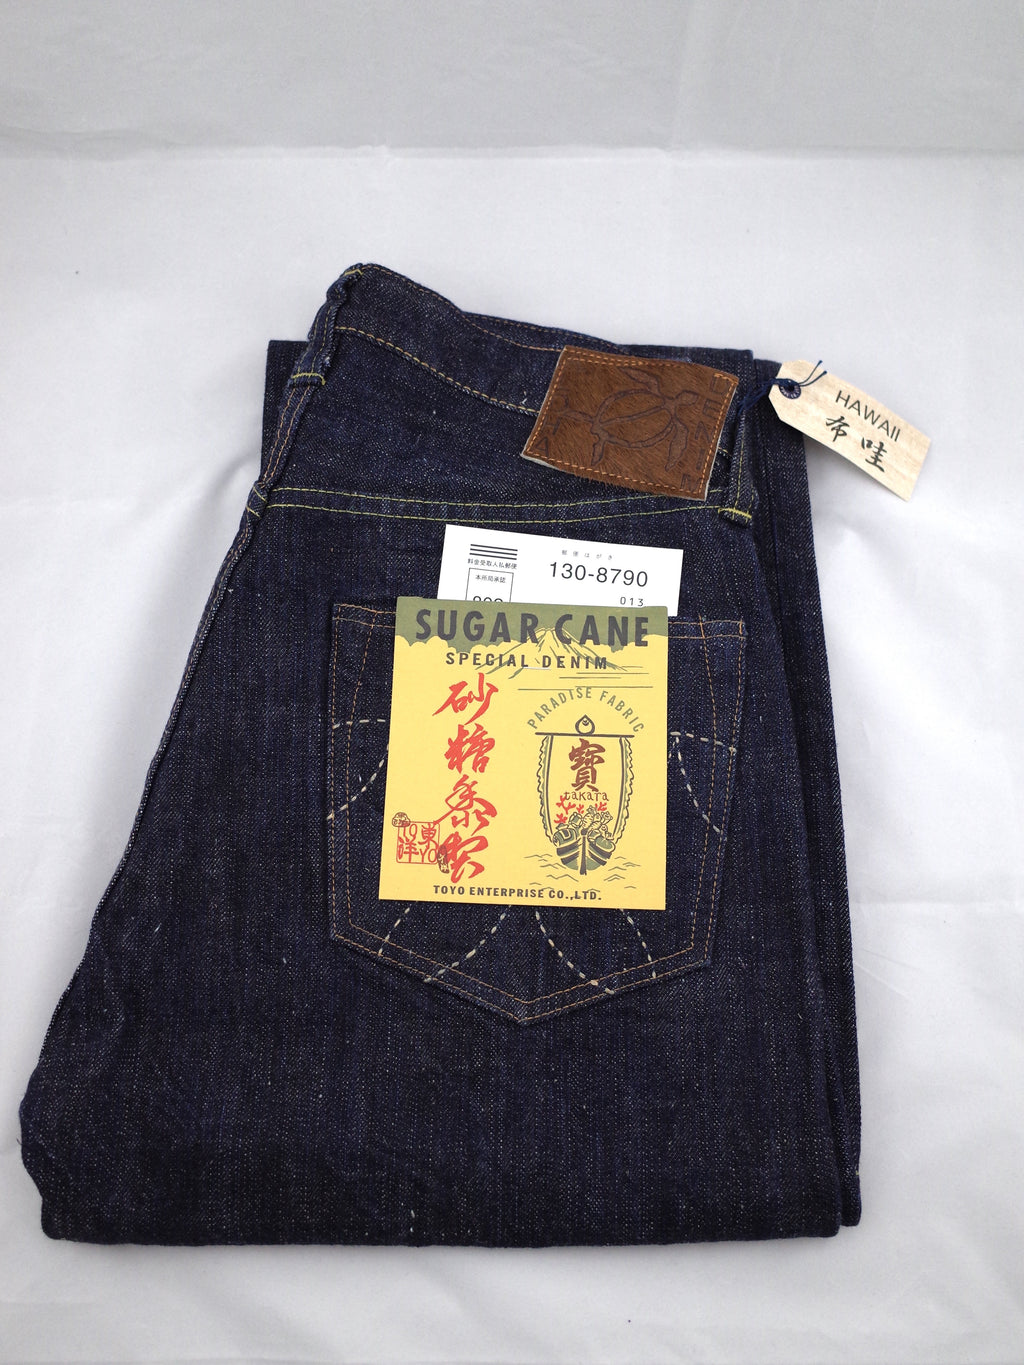 SugarCane 砂糖黍製 Hawaii Dye denim 10% Off